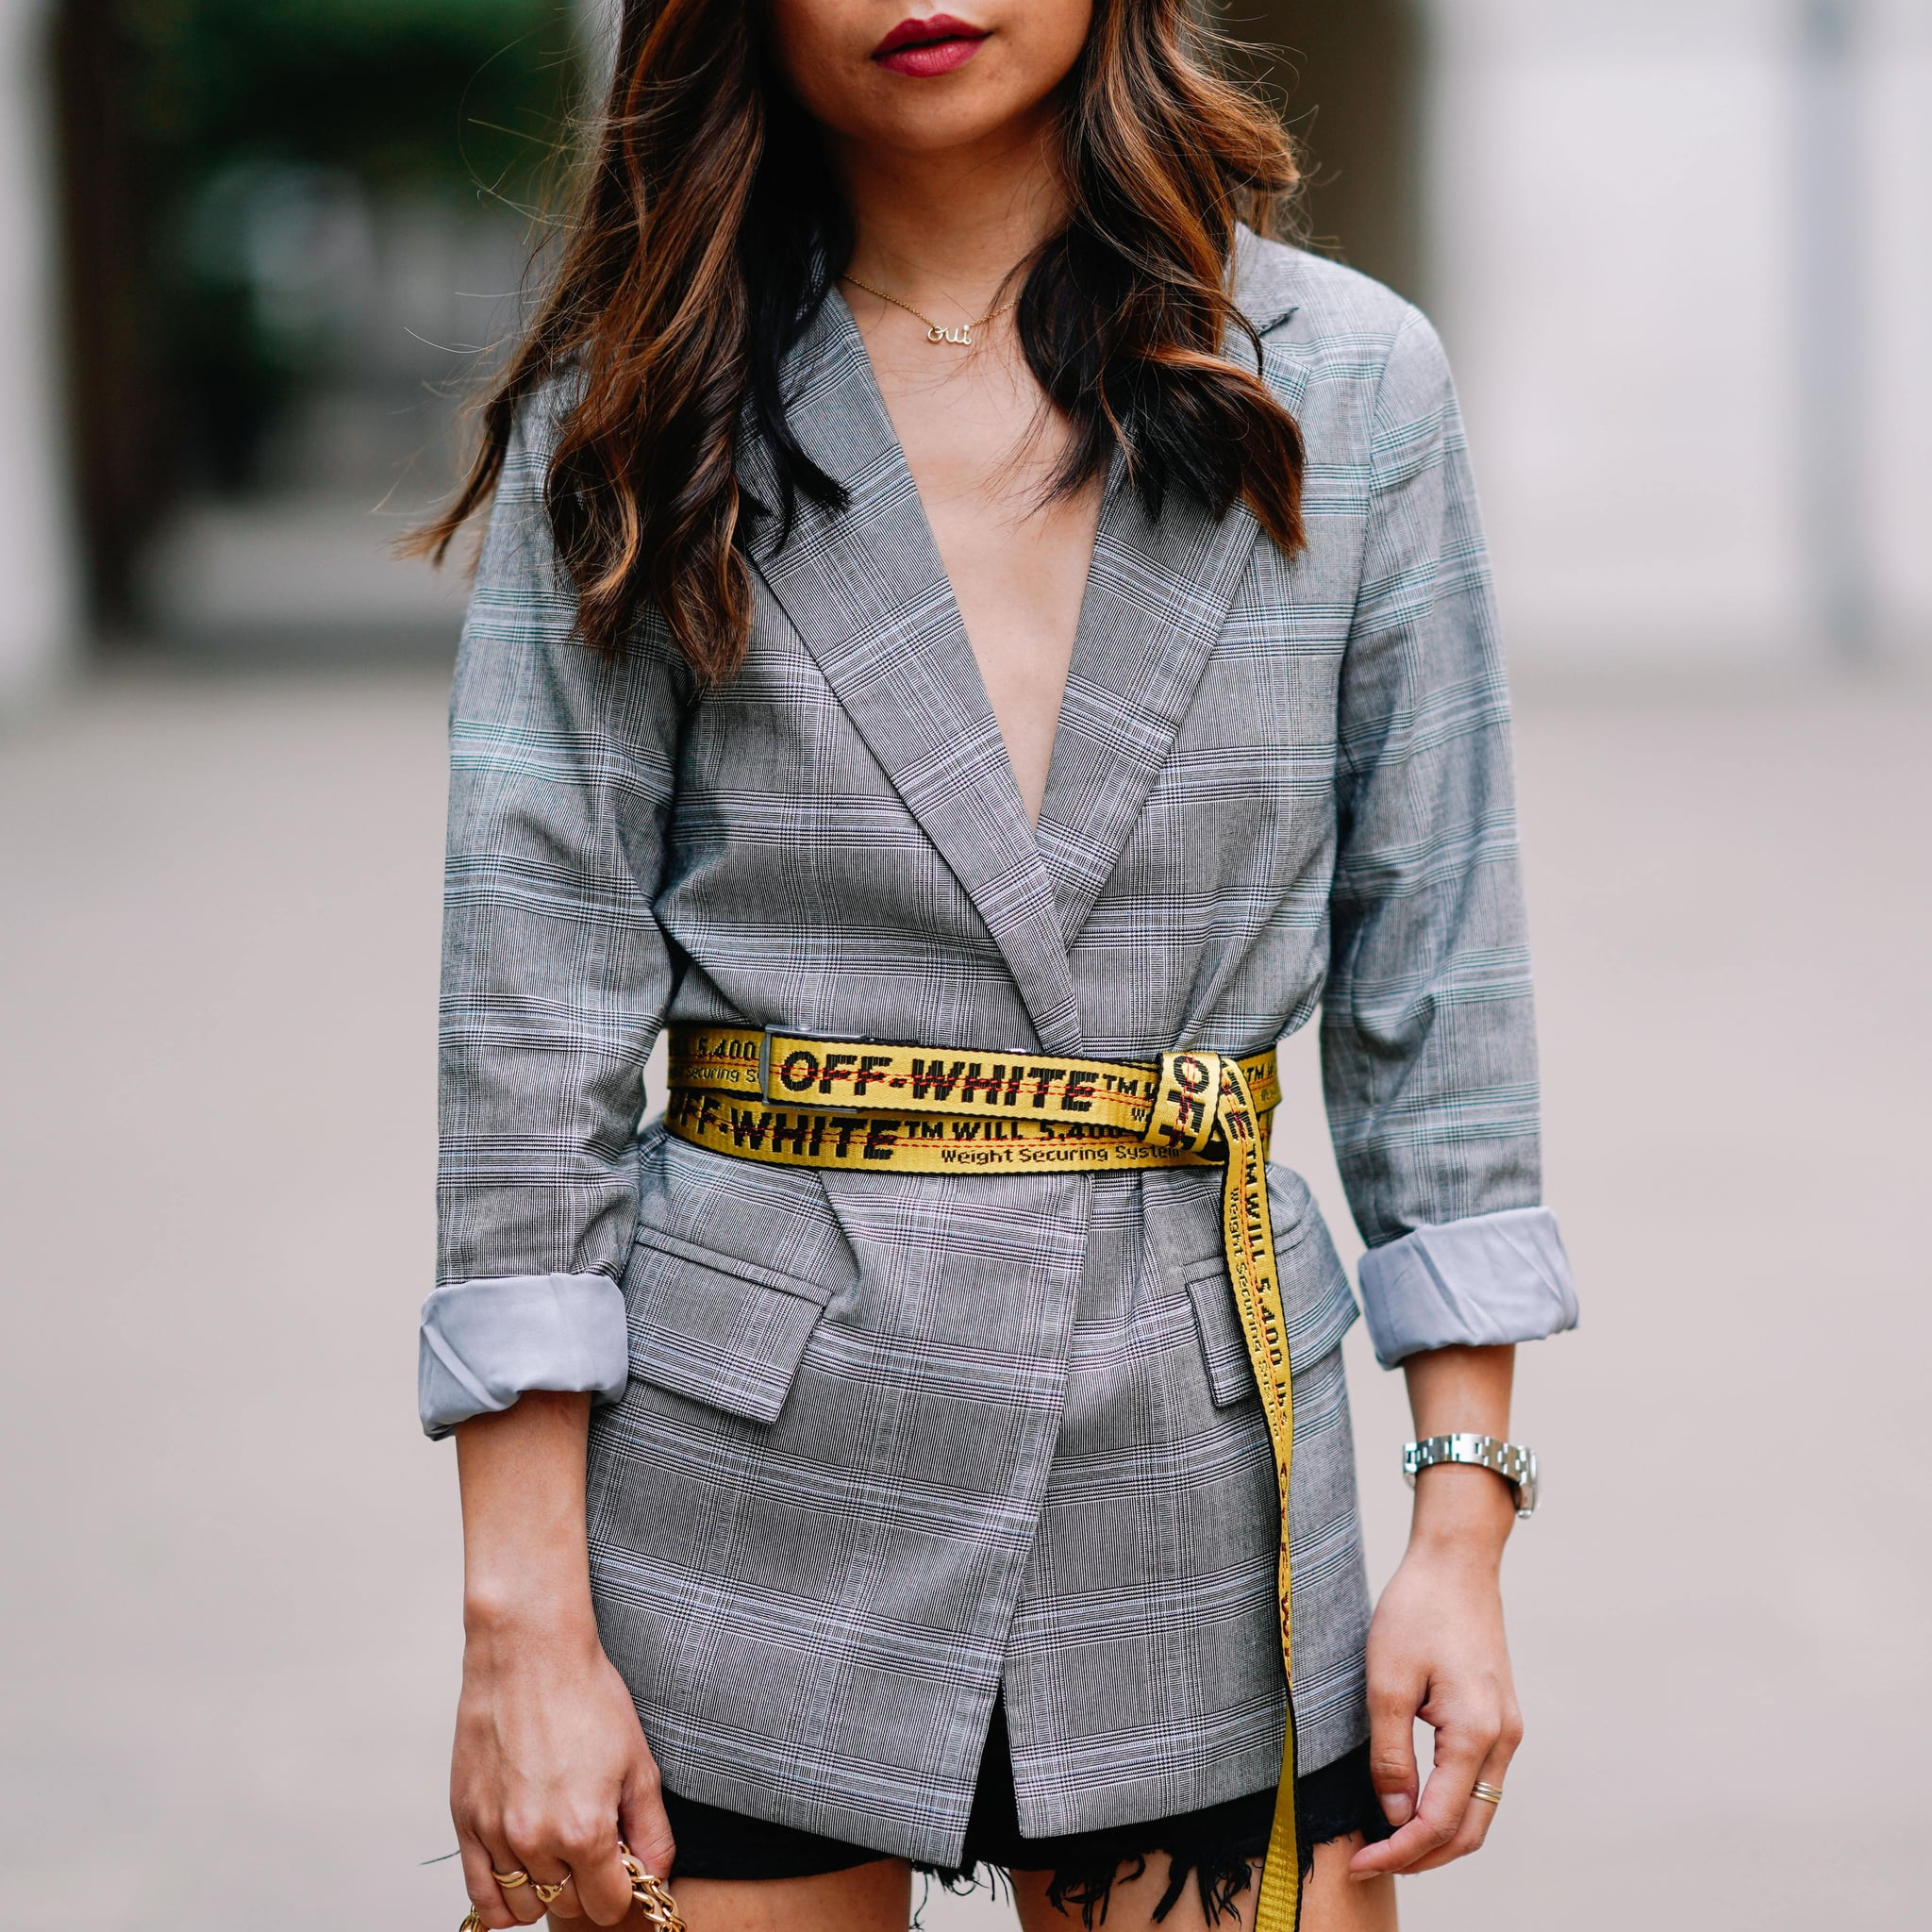 cac32561445 How to Wear the Off-White Belt | POPSUGAR Fashion